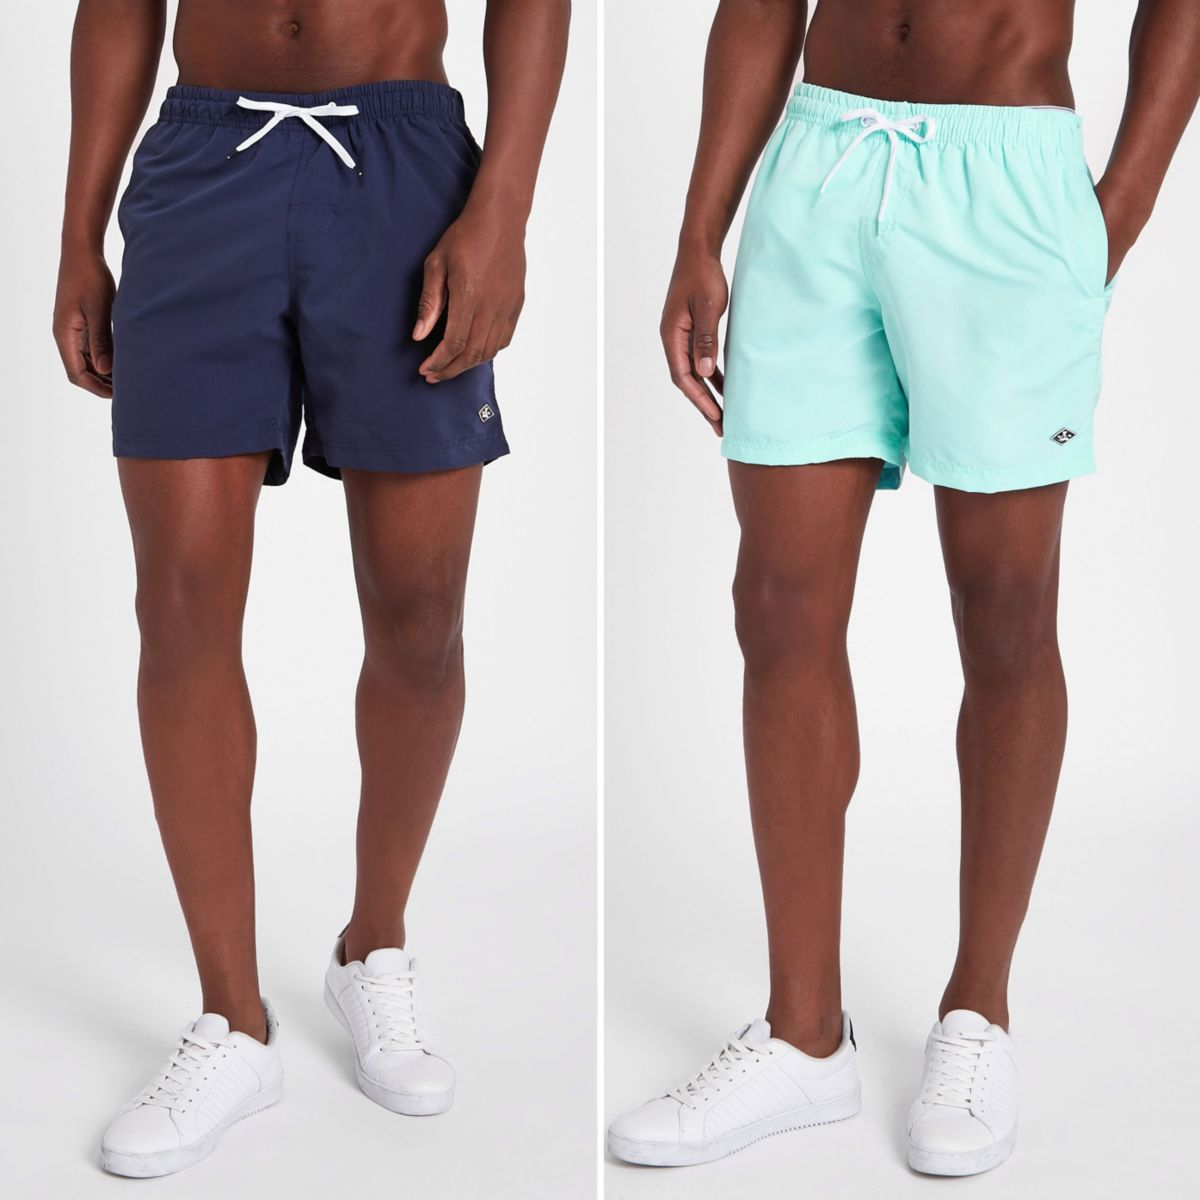 Navy and mint blue short swim shorts pack